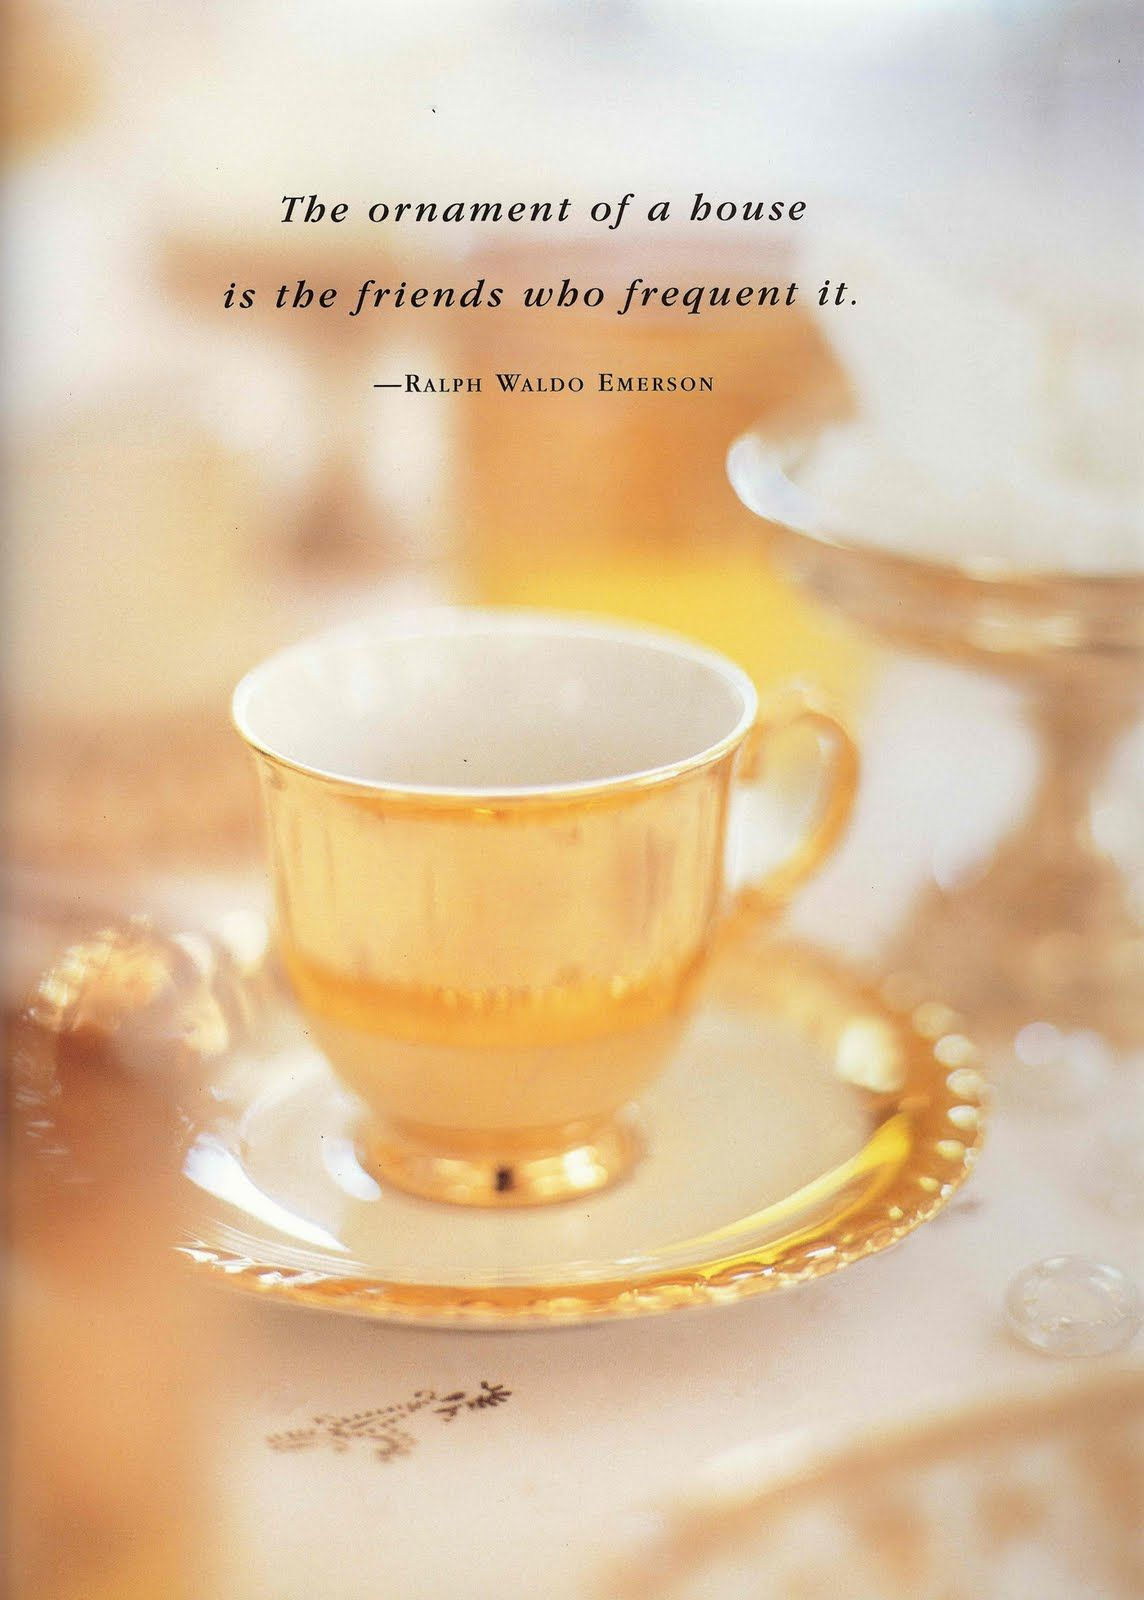 Quotes About Tea And Friendship Ornament Of A House  Inspire Friendship  Pinterest  Tea Time